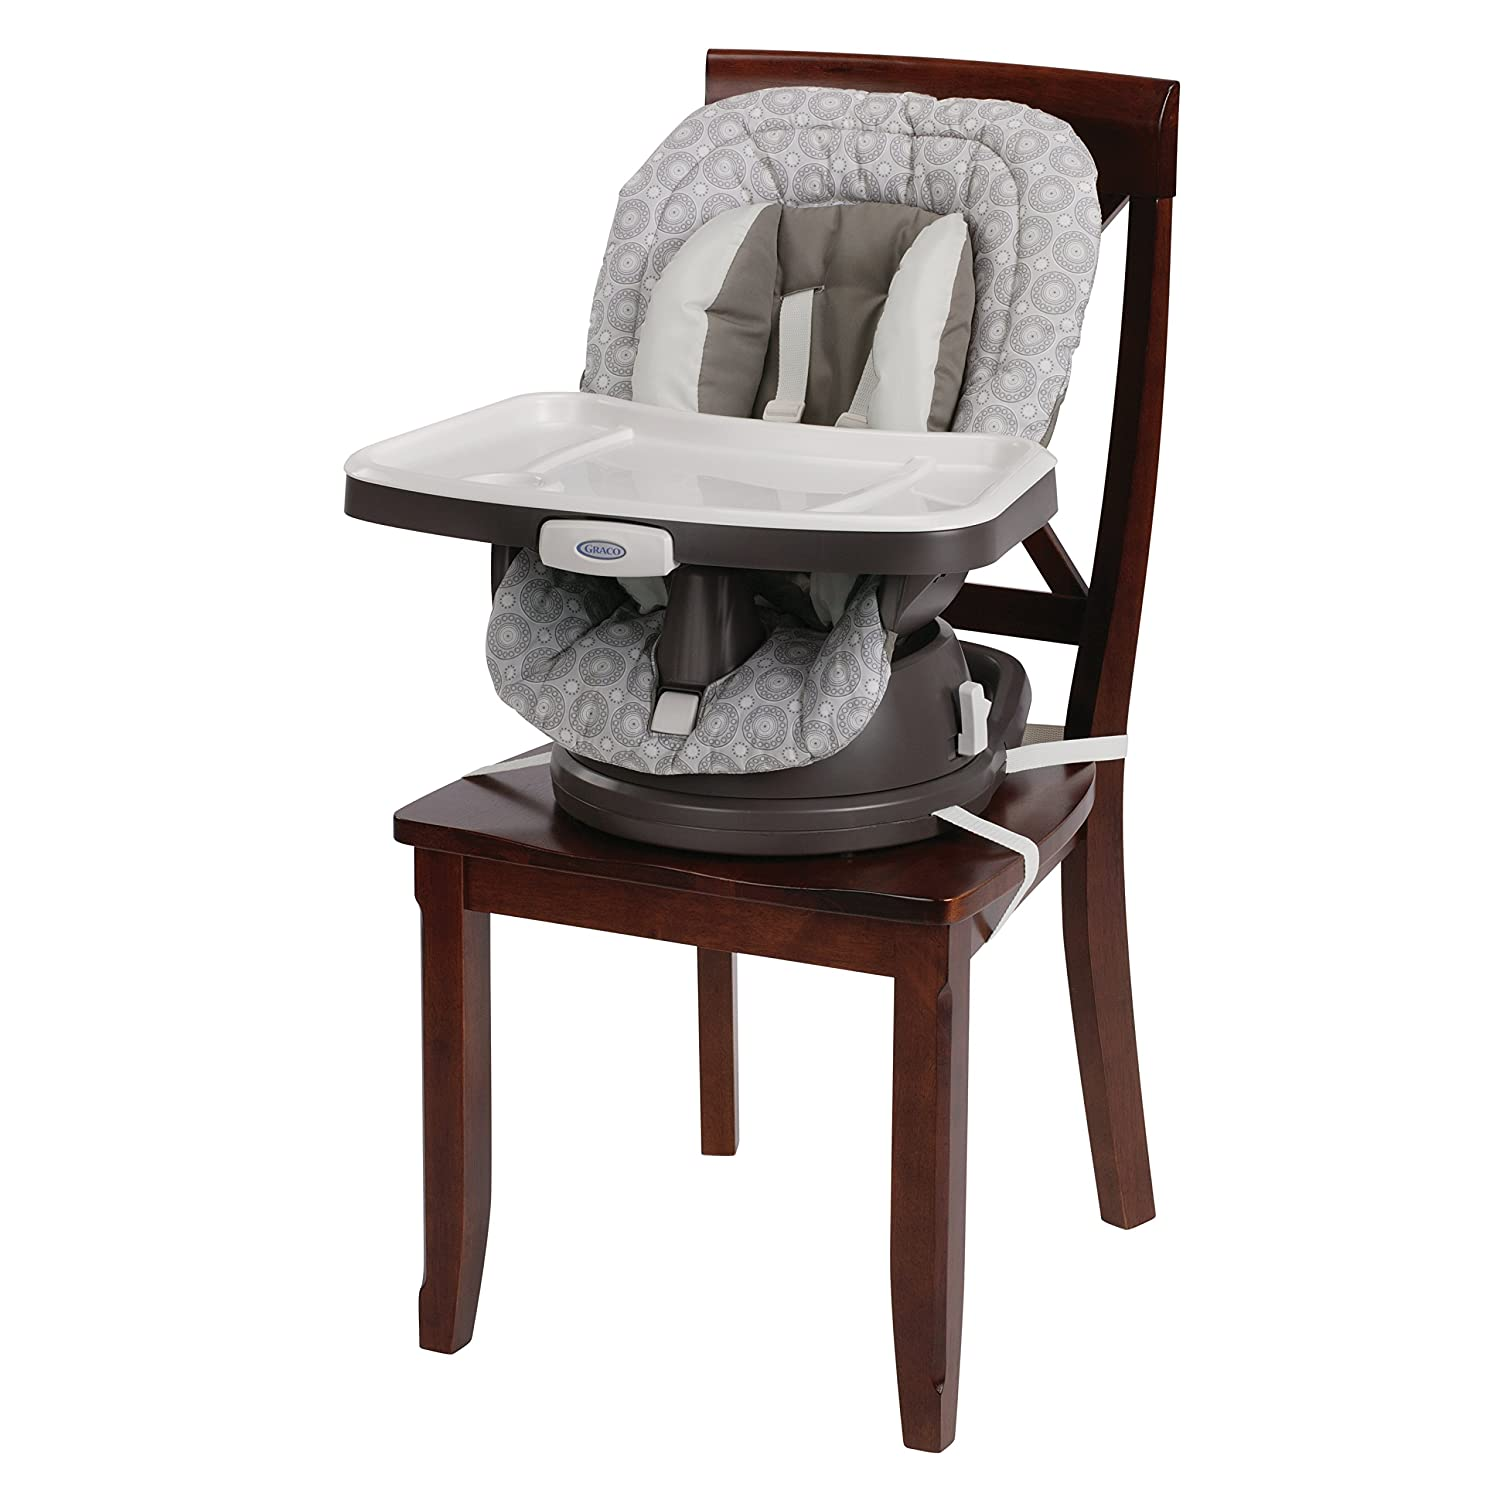 Amazon Graco Swivi Seat 3 in 1 Booster High Chair Abbington